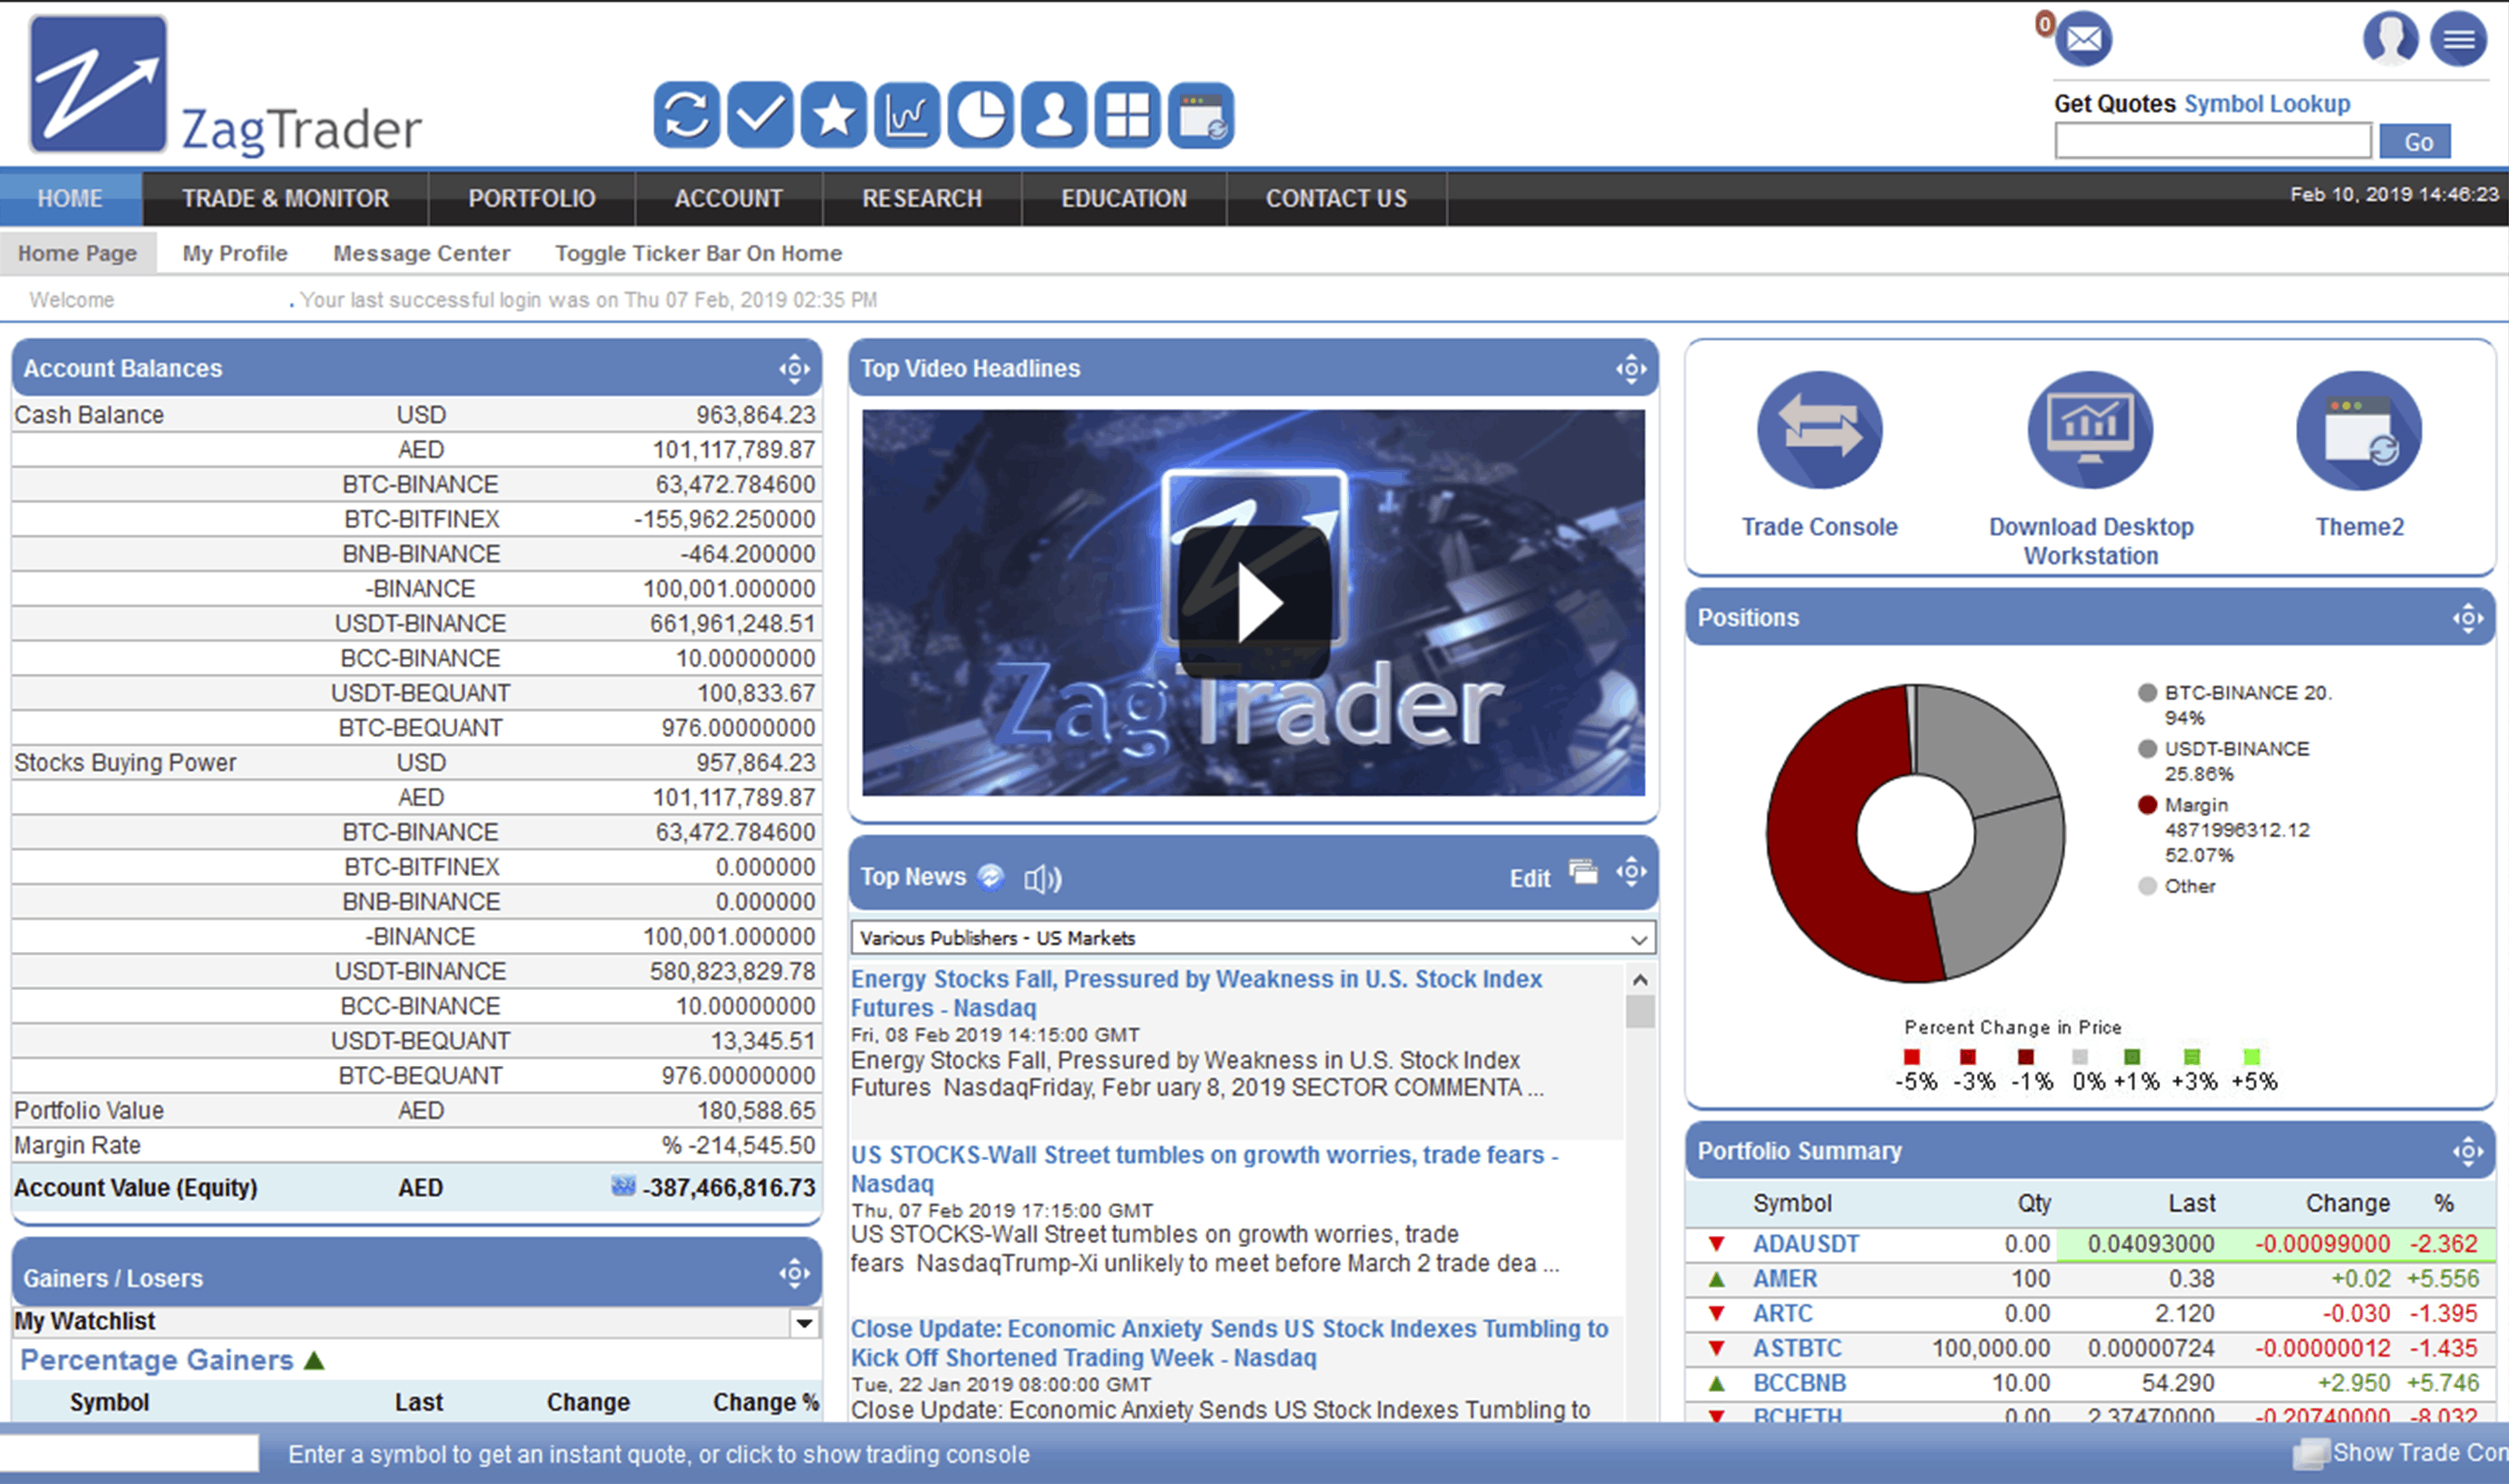 ZagTrader Execution Management System